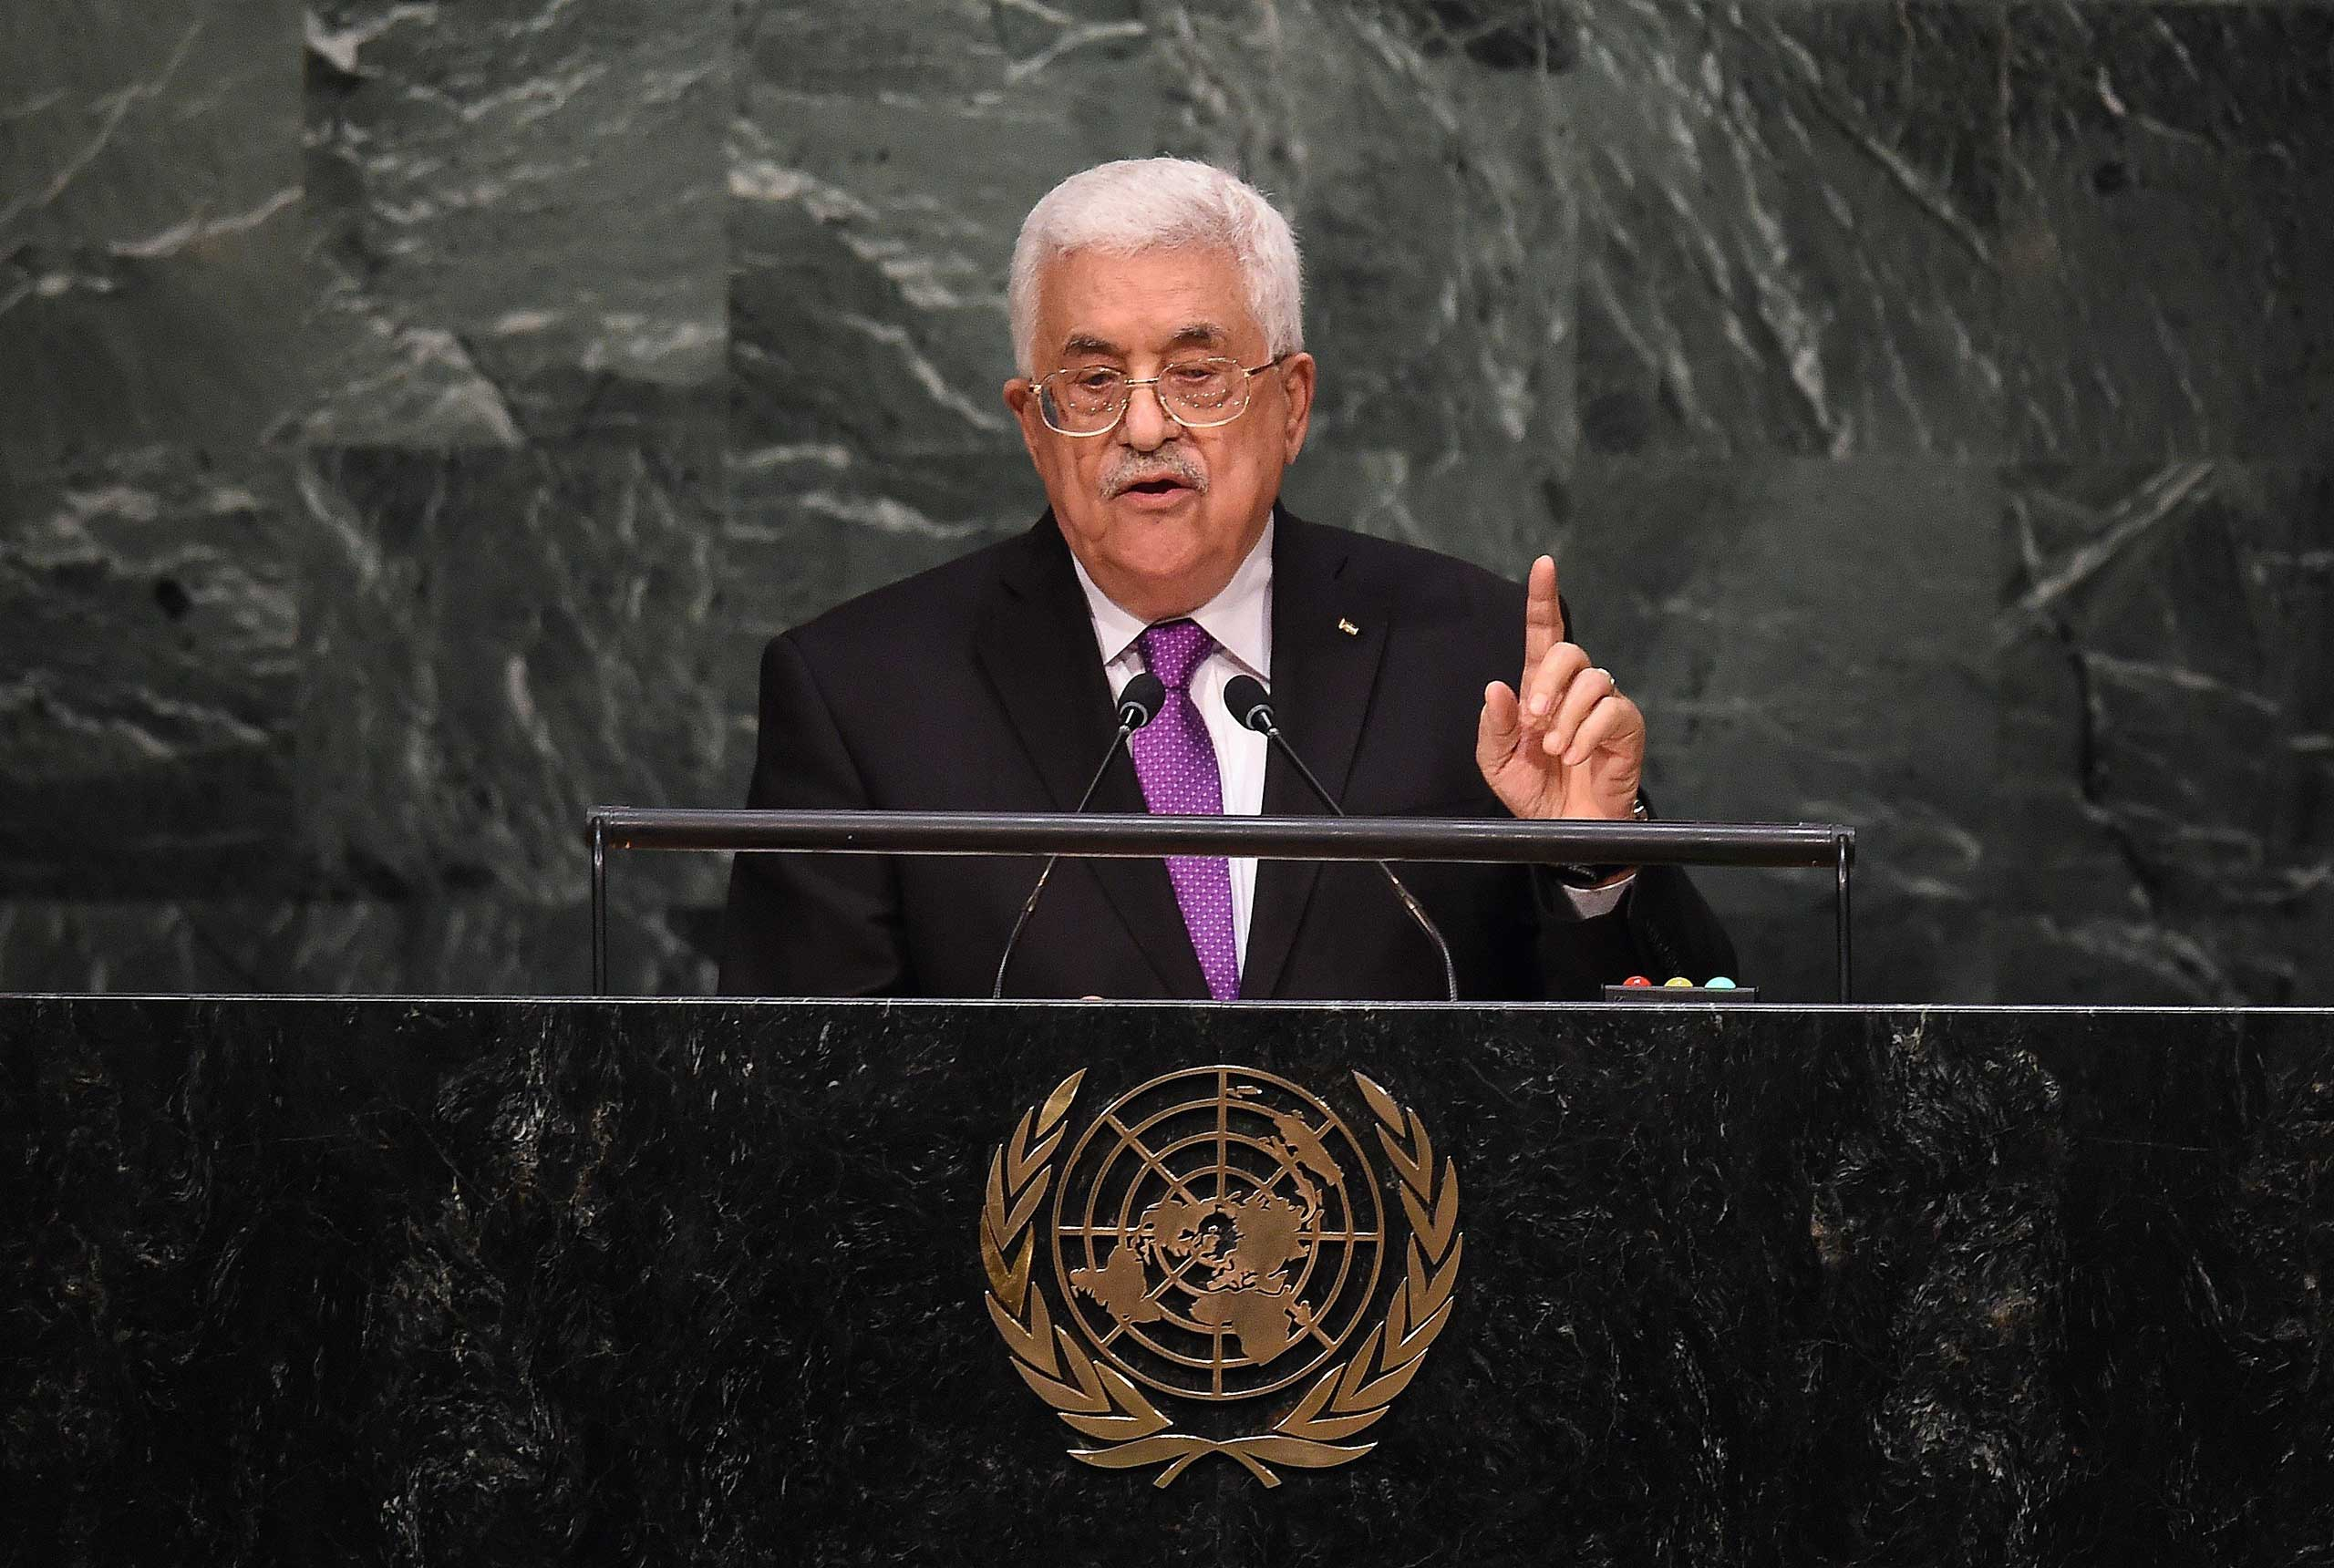 TOPSHOTS-UN-GENERAL ASSEMBLY-PALESTINIANS